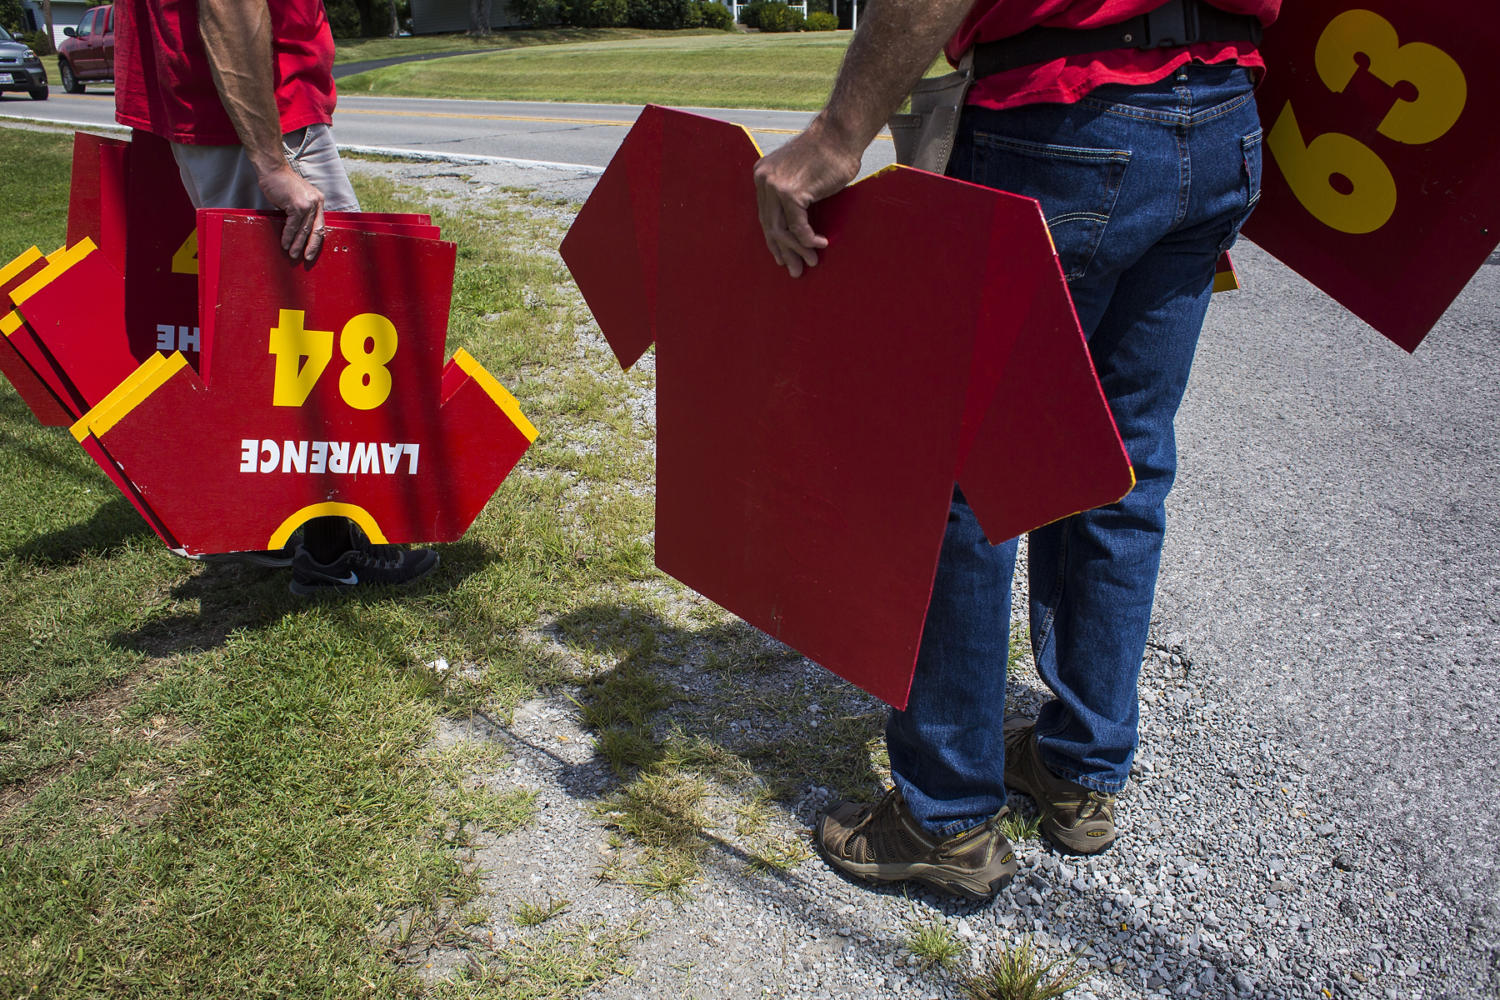 Grant Guthman, left, and Mike Karg, both of Murphysboro, hang Red Devils football jersey signs along North 14th Street prior to the 100th meeting between the Murphysboro Red Devils and the Carbondale Terriers on Friday, Aug. 25, 2017, in Murphysboro, Illinois. (Ryan Michalesko | @photosbylesko)